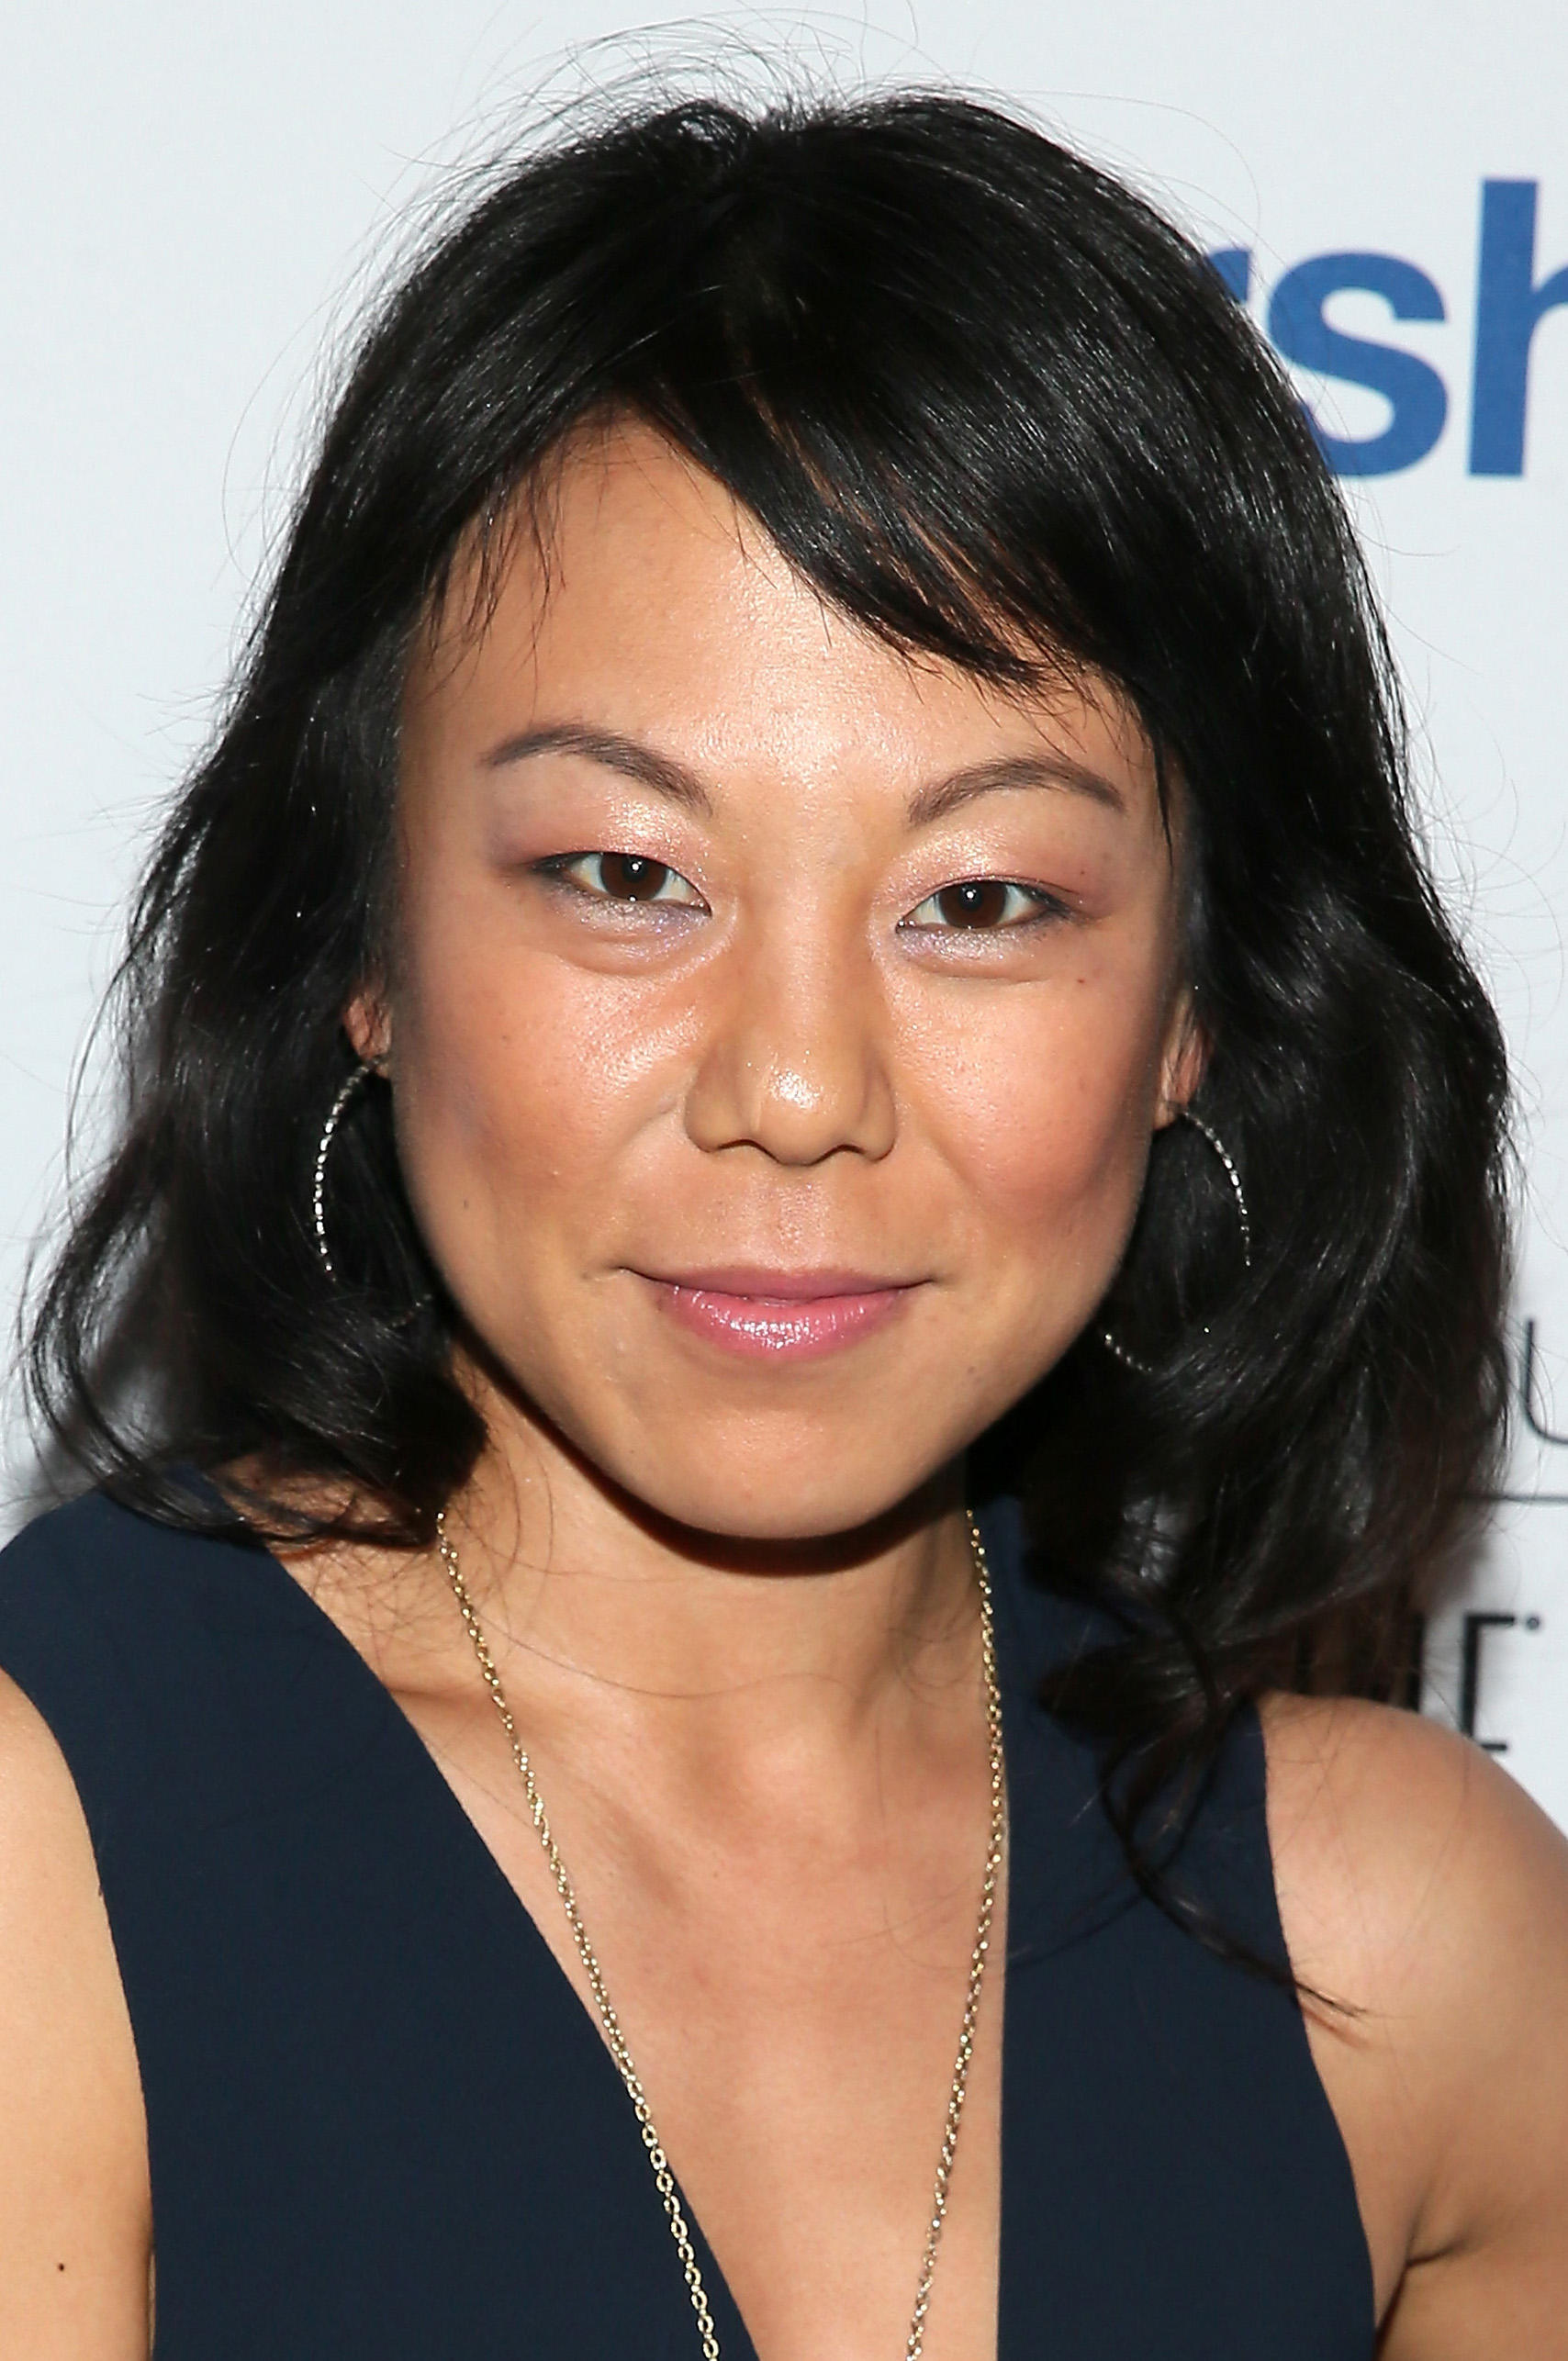 Ali Ahn at the 2015 Gersh Upfronts Party at Asellina at the Gansevoort.